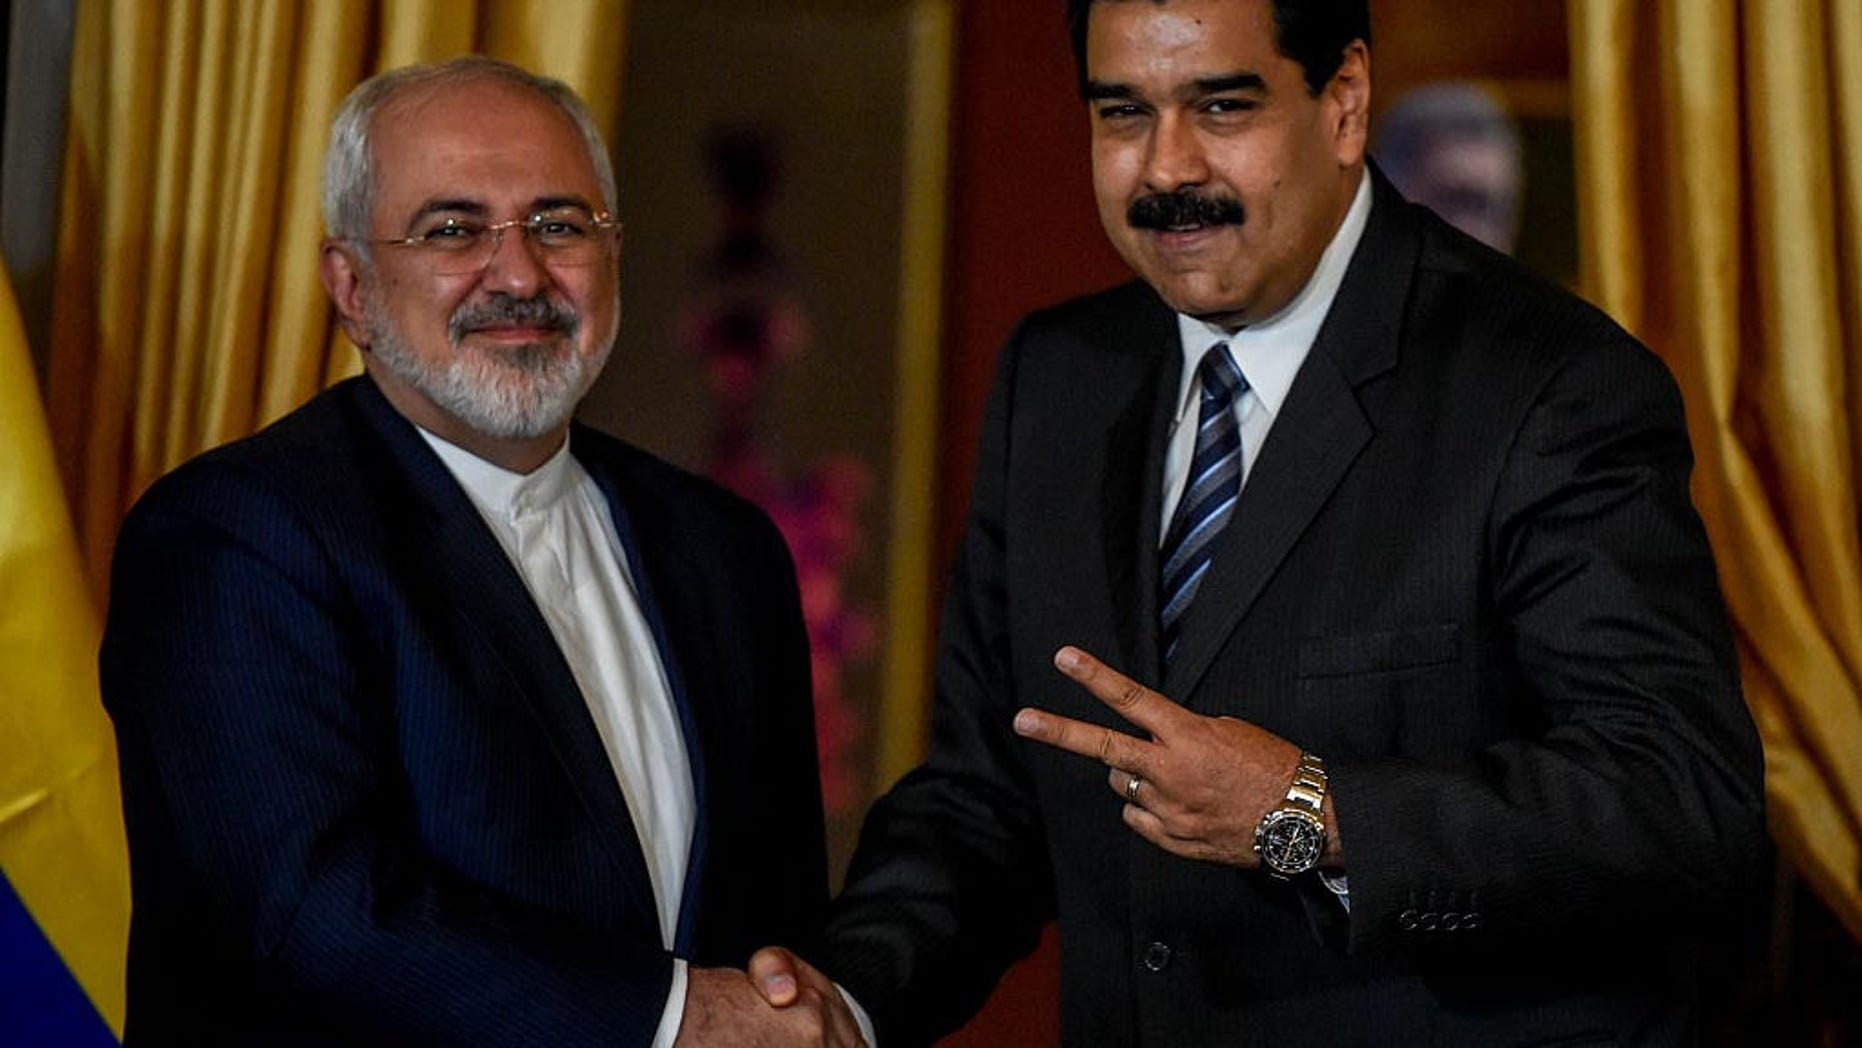 Venezuela's President Nicolas Maduro and Iranian Foreign Minister Mohammad Javad Zarif in Caracas on August 27, 2016.